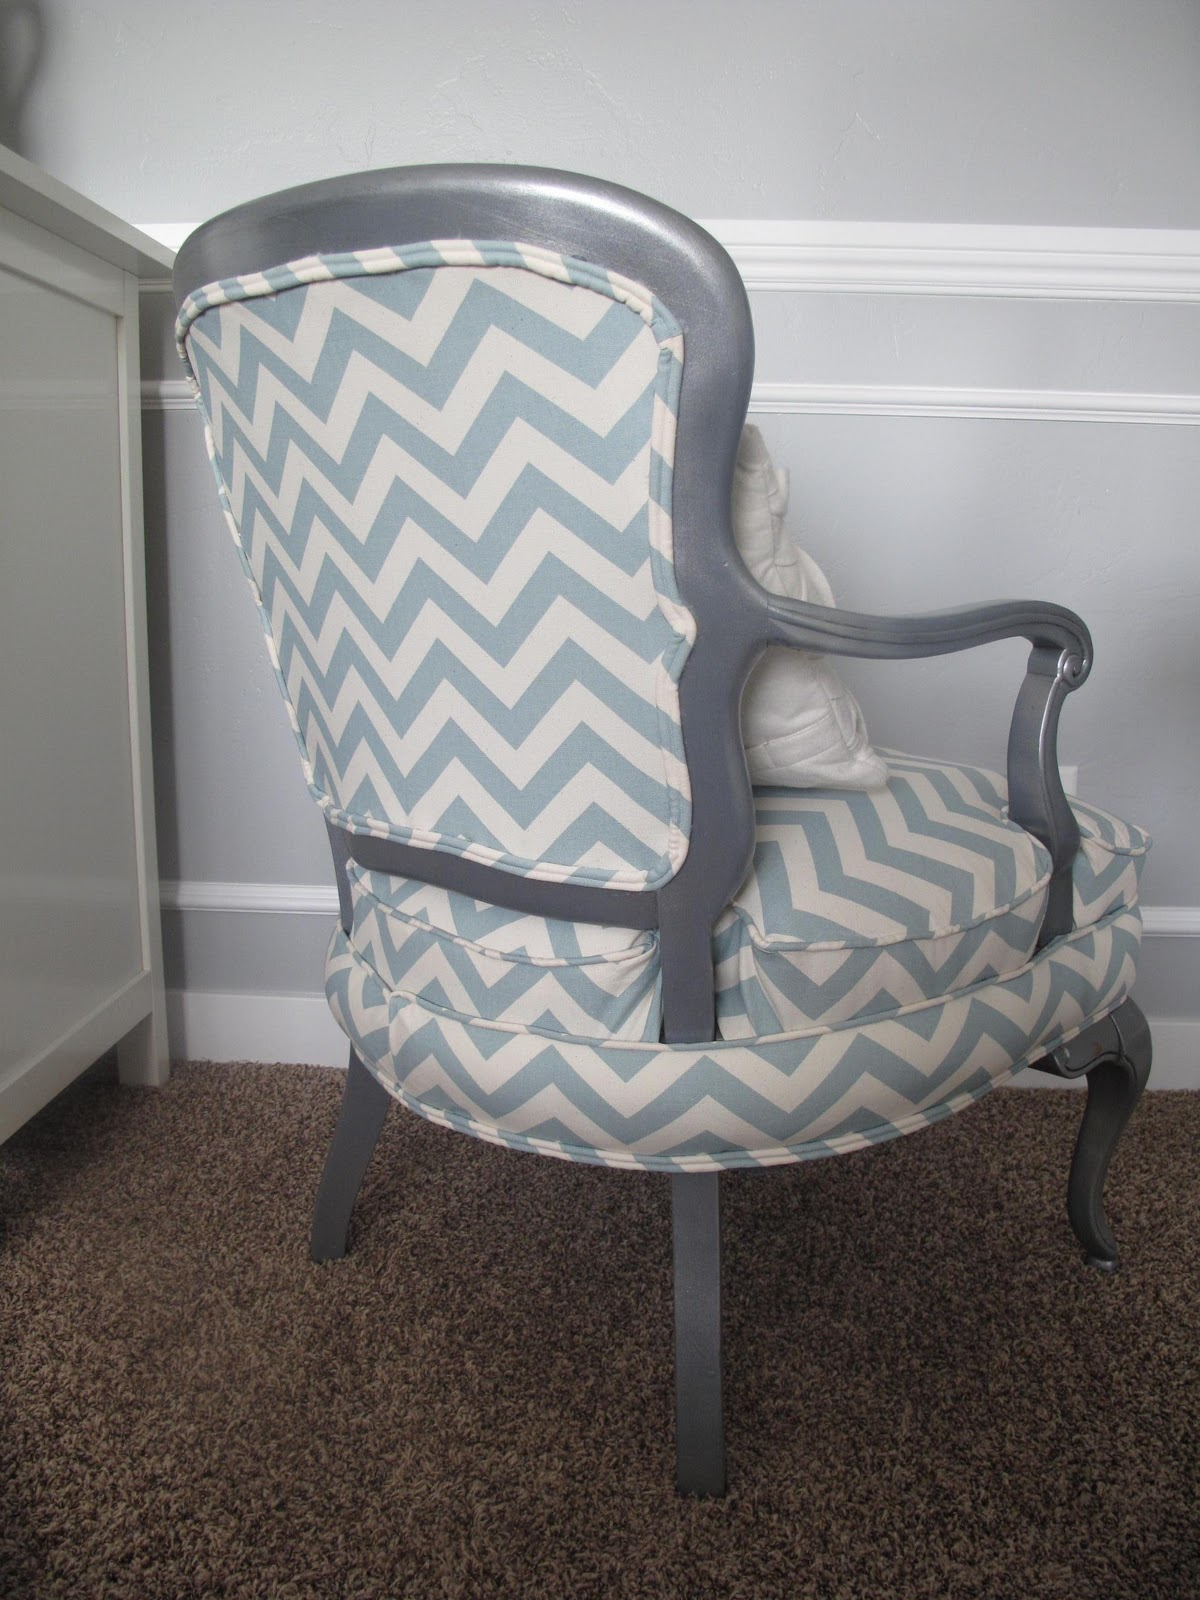 Little miss penny wenny chevron chair - Como tapizar una butaca ...